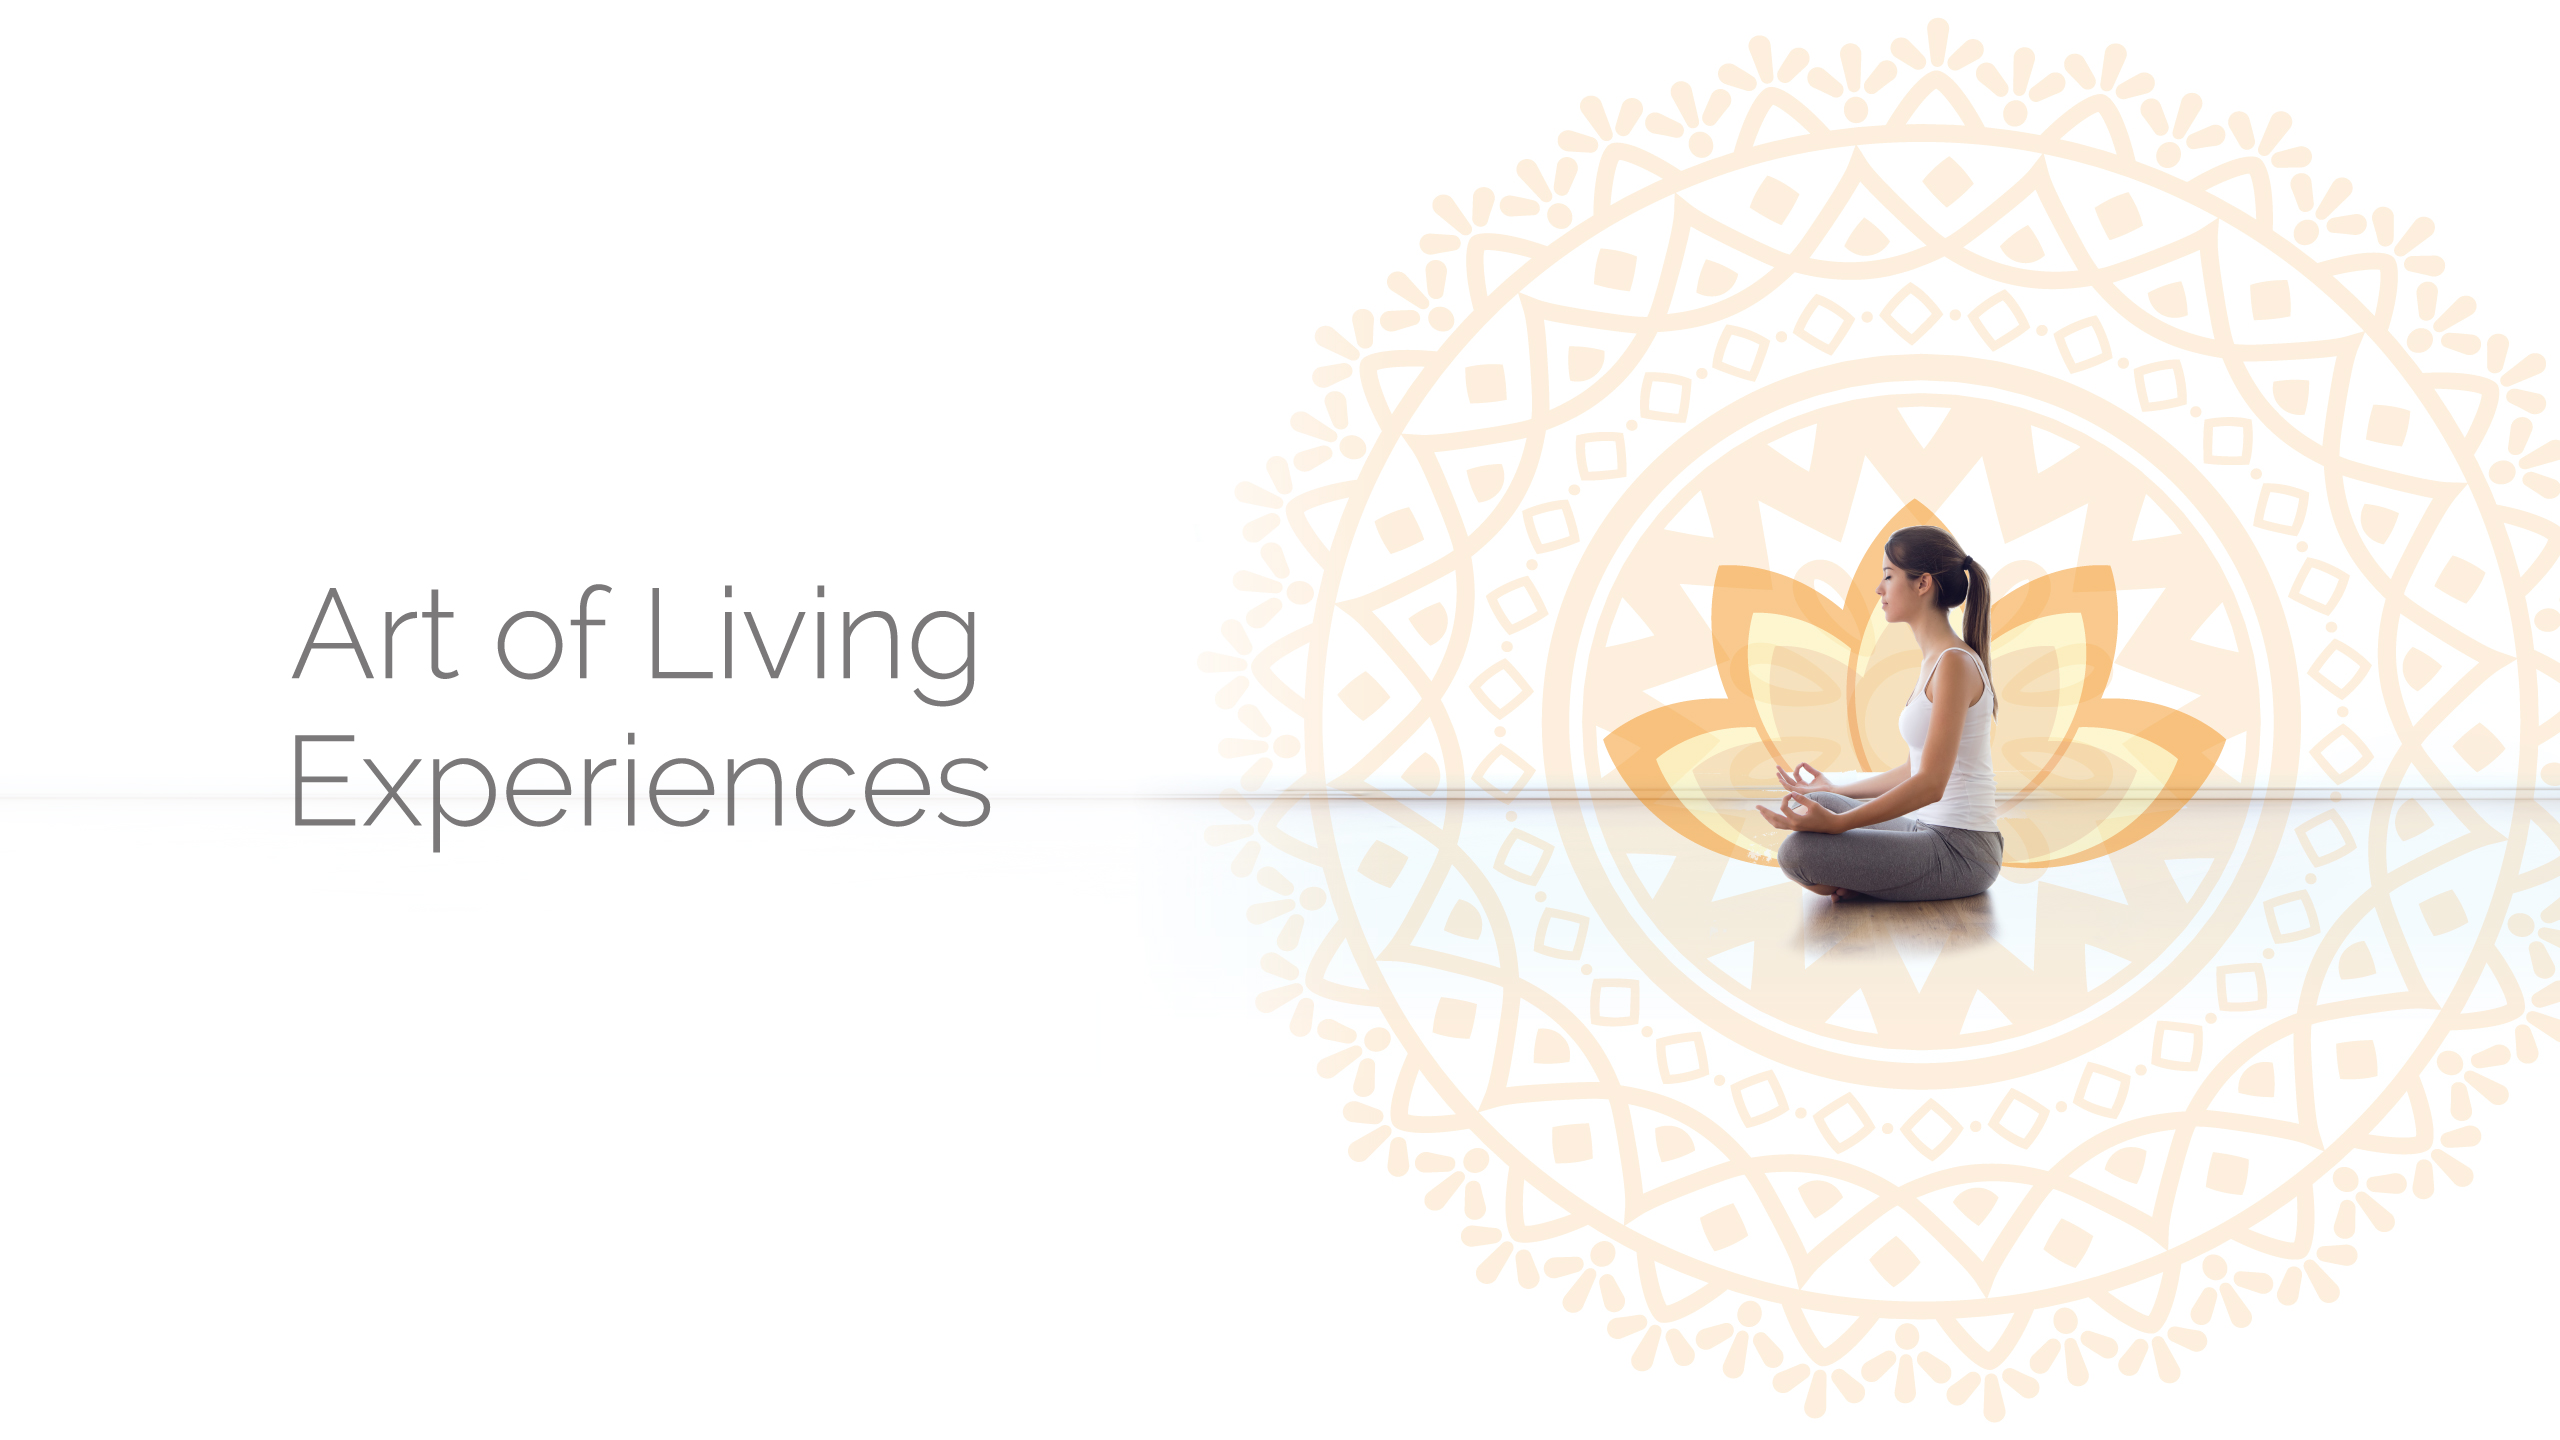 art of living experiences stories full of life